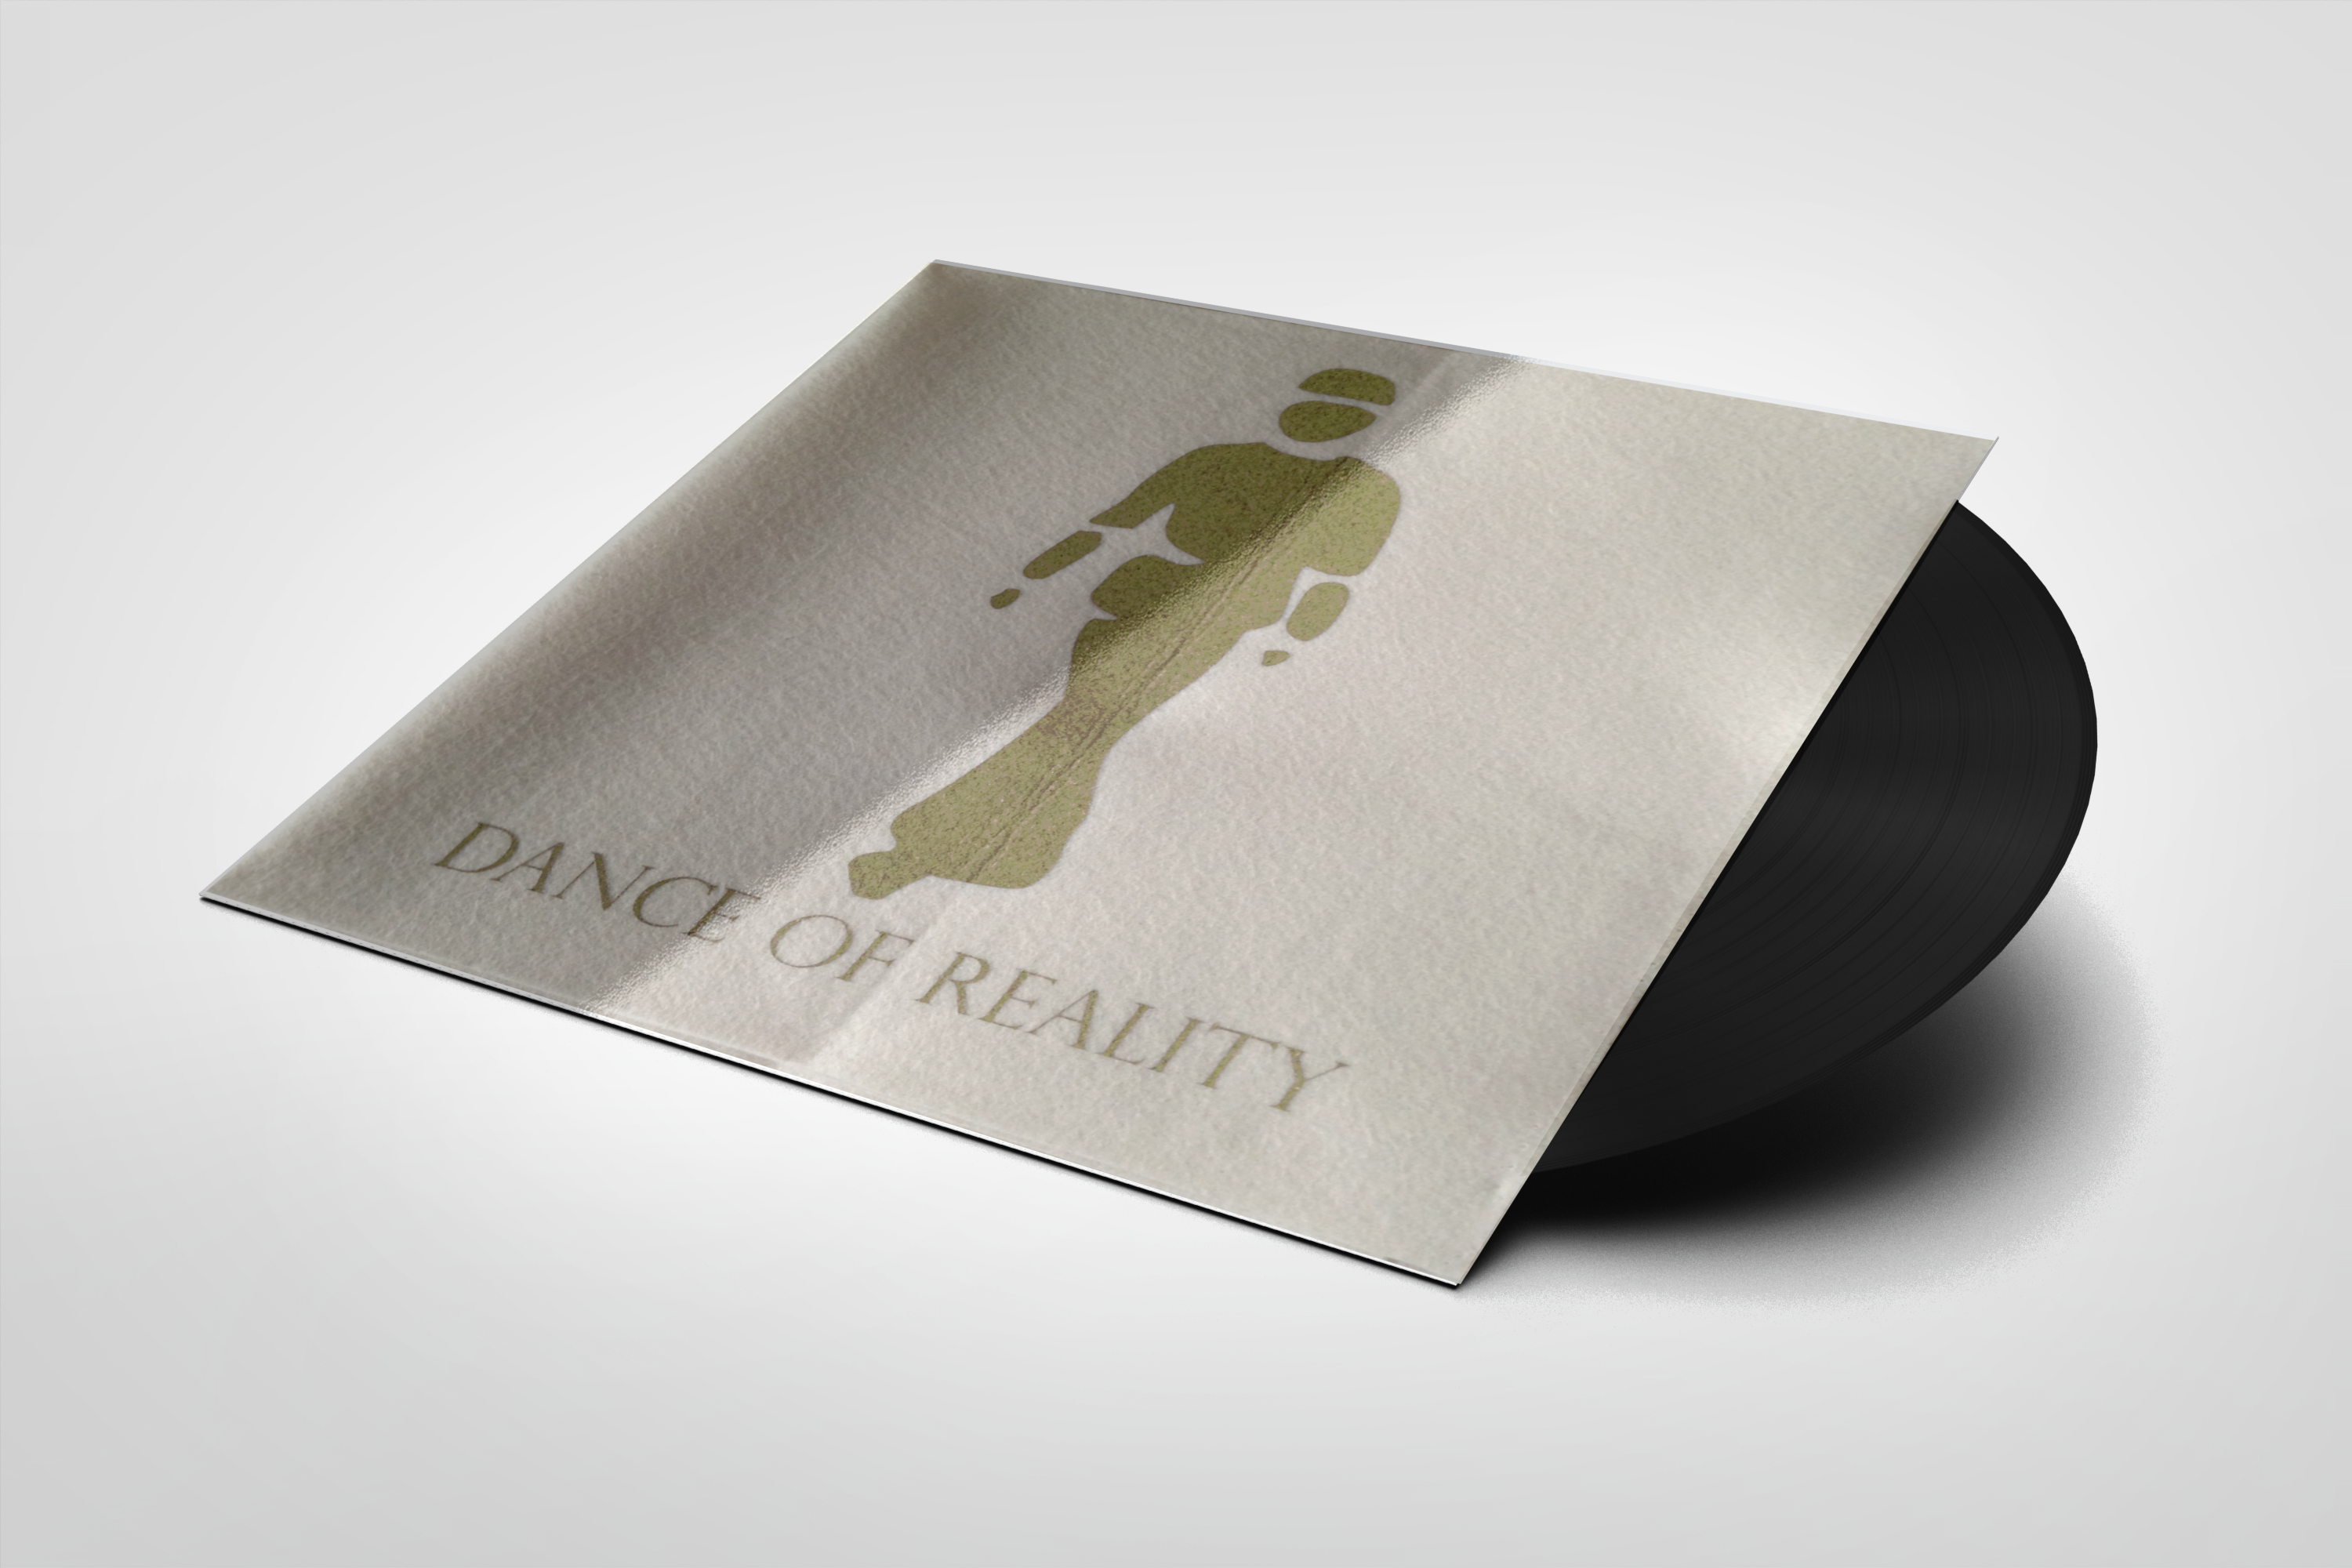 Dance Of Reality (2013 Original Soundtrack)